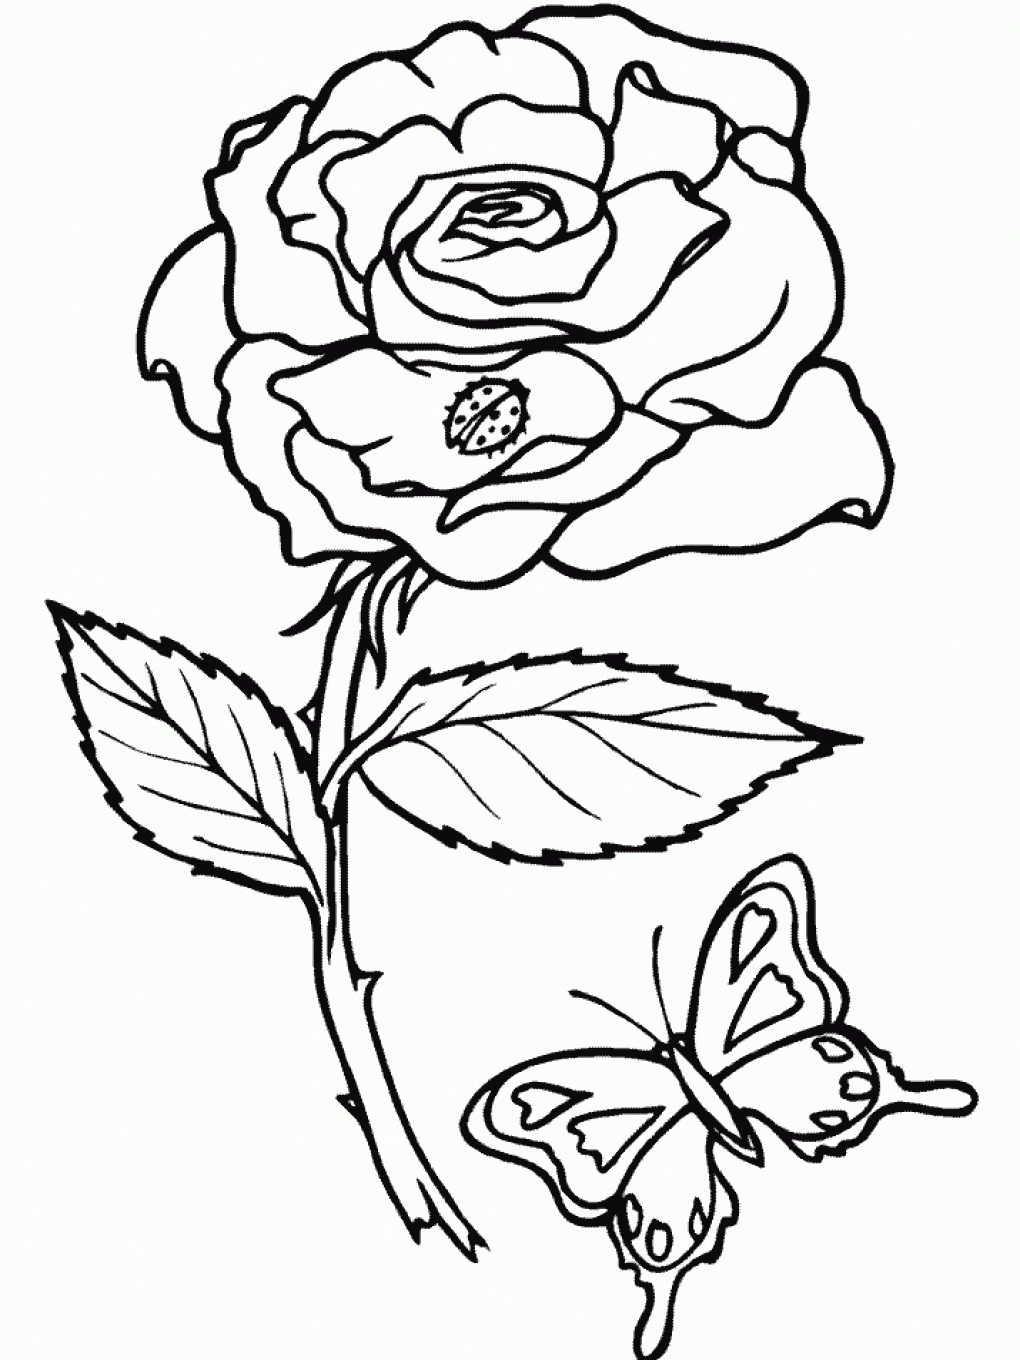 Free Rose Coloring Pages 27 Rose Coloring Pages Printable Collections Free Coloring Pages